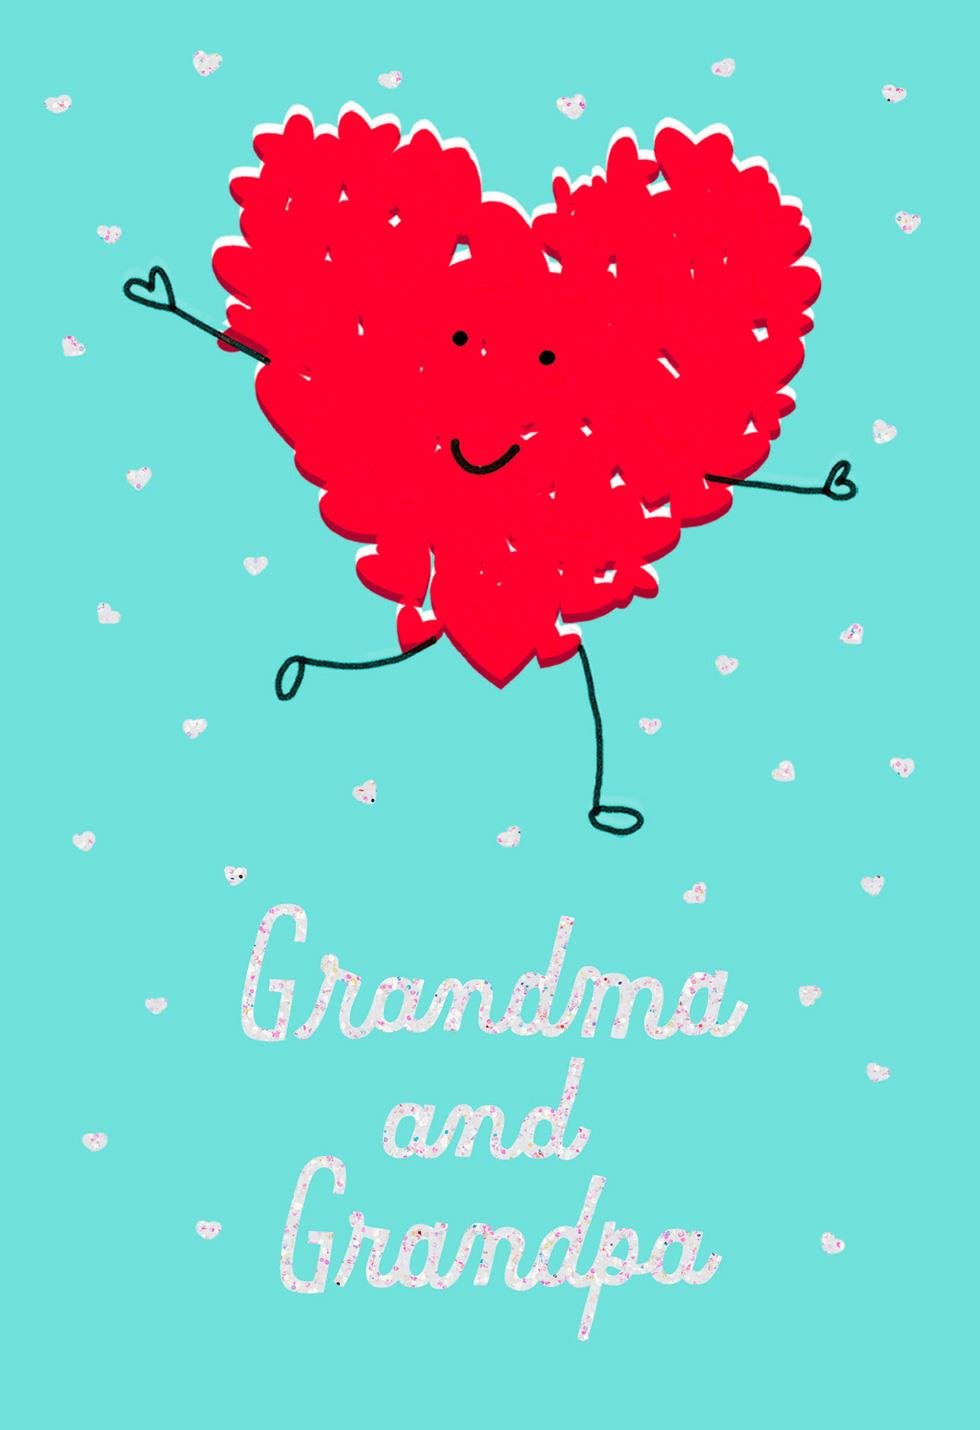 You make my heart smile valentines day card for grandparents you make my heart smile valentines day card for grandparents kristyandbryce Choice Image